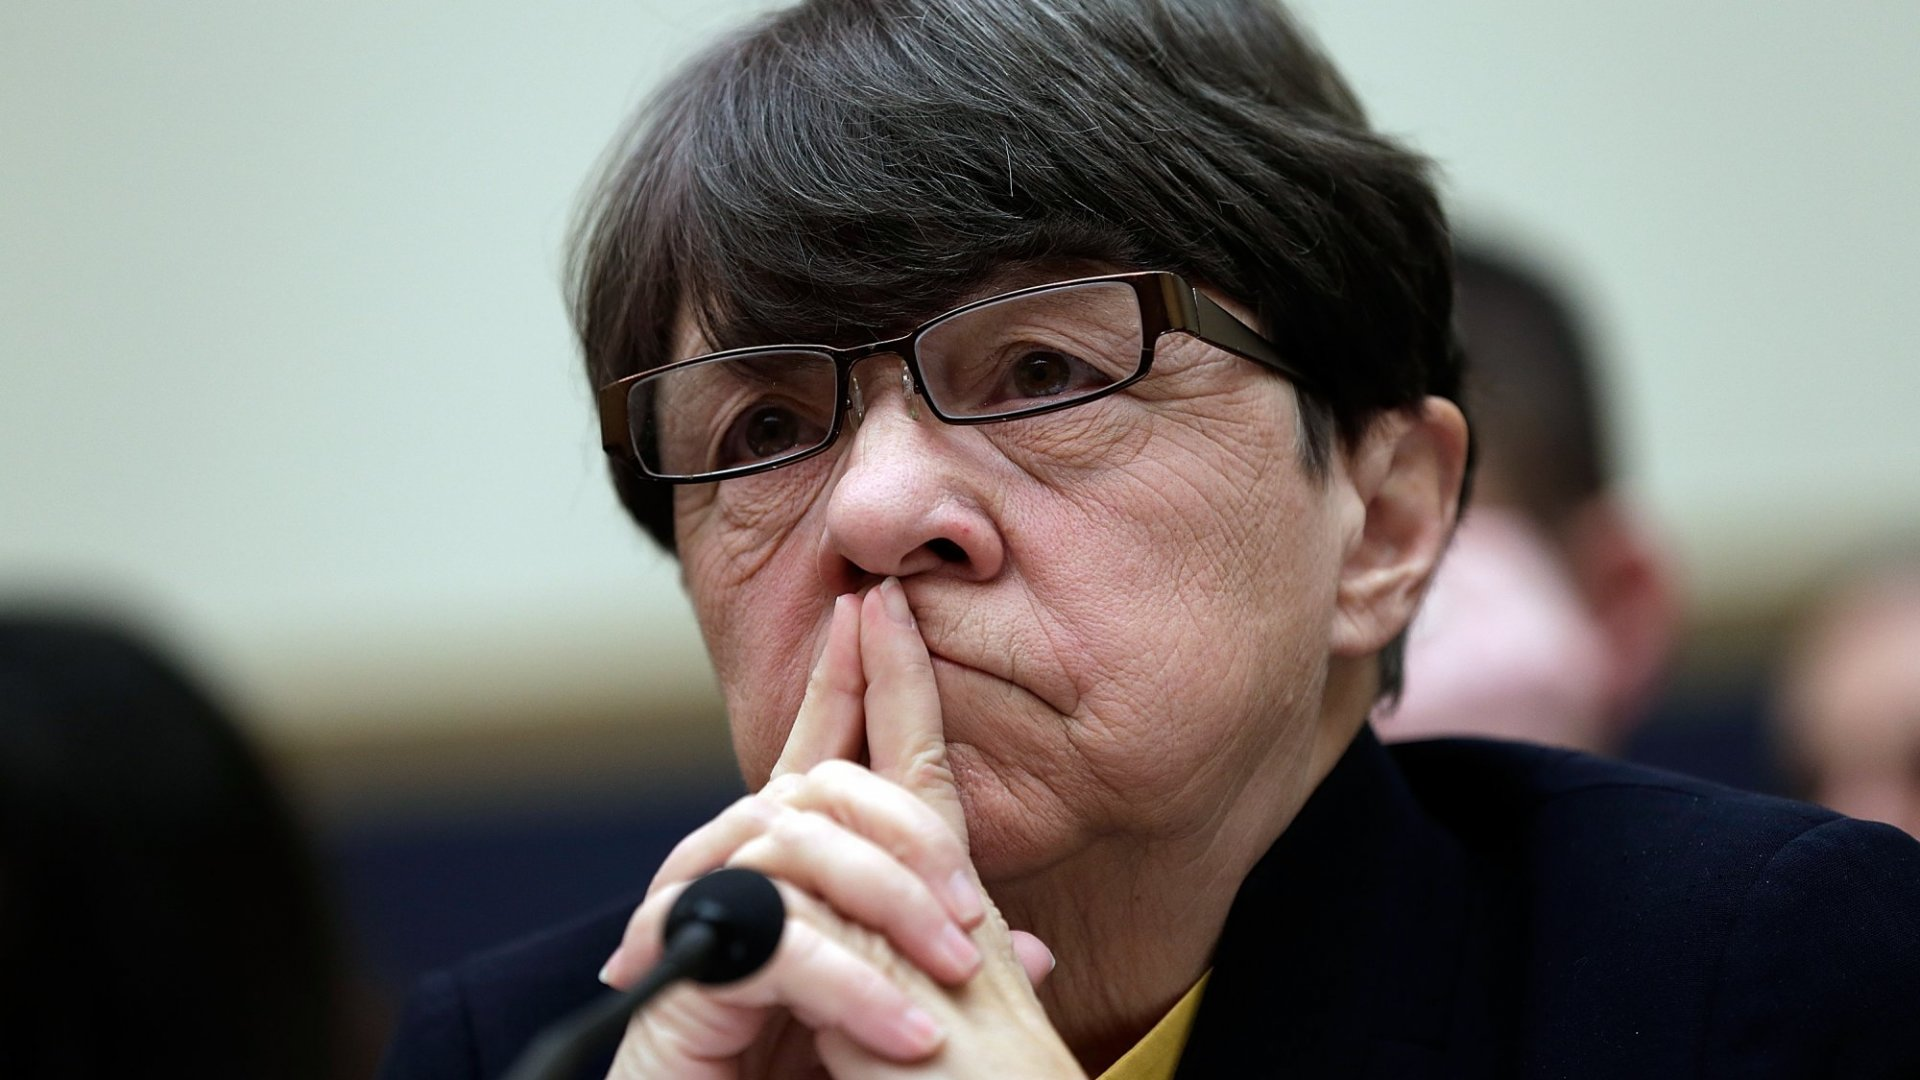 Securities and Exchange Commission Chairwoman Mary Jo White